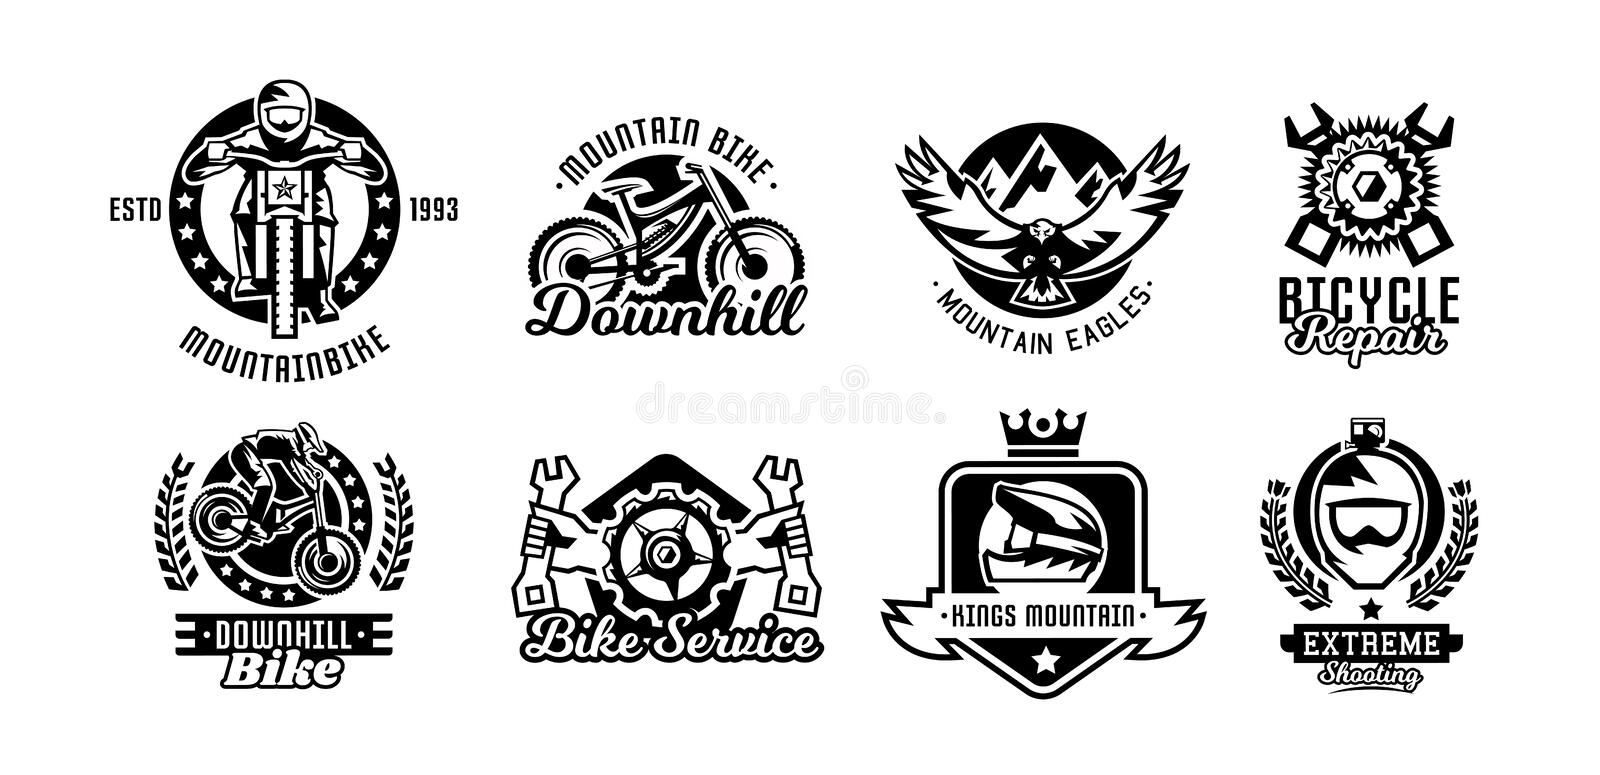 Set of logos, mountain bike. Bicycle, racer, eagle, repair, service, downhill, freeride. Vector illustration royalty free stock photography